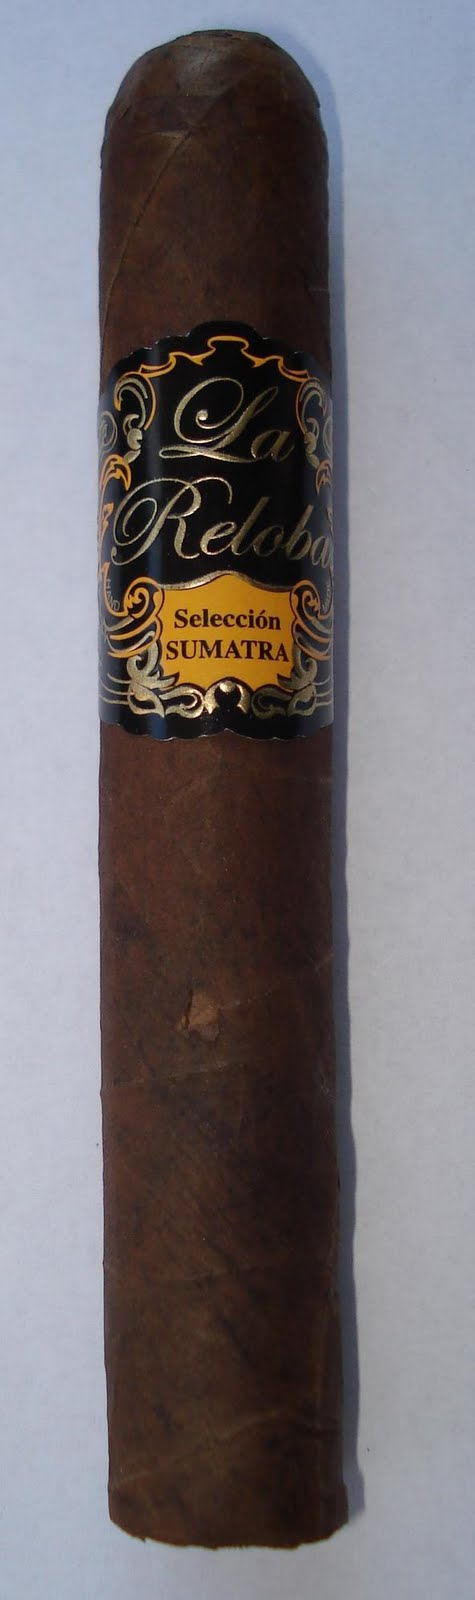 "La Reloba Selección Sumatra MADE BY: My Father Cigars S.A. FACTORY LOCATION: Nicaragua WRAPPER: Ecuador BINDER: Nicaragua FILLER: Nicaragua PRICE: $6.50 RING GAUGE: 52 LENGTH: 6 1/8"" RATING: 92"